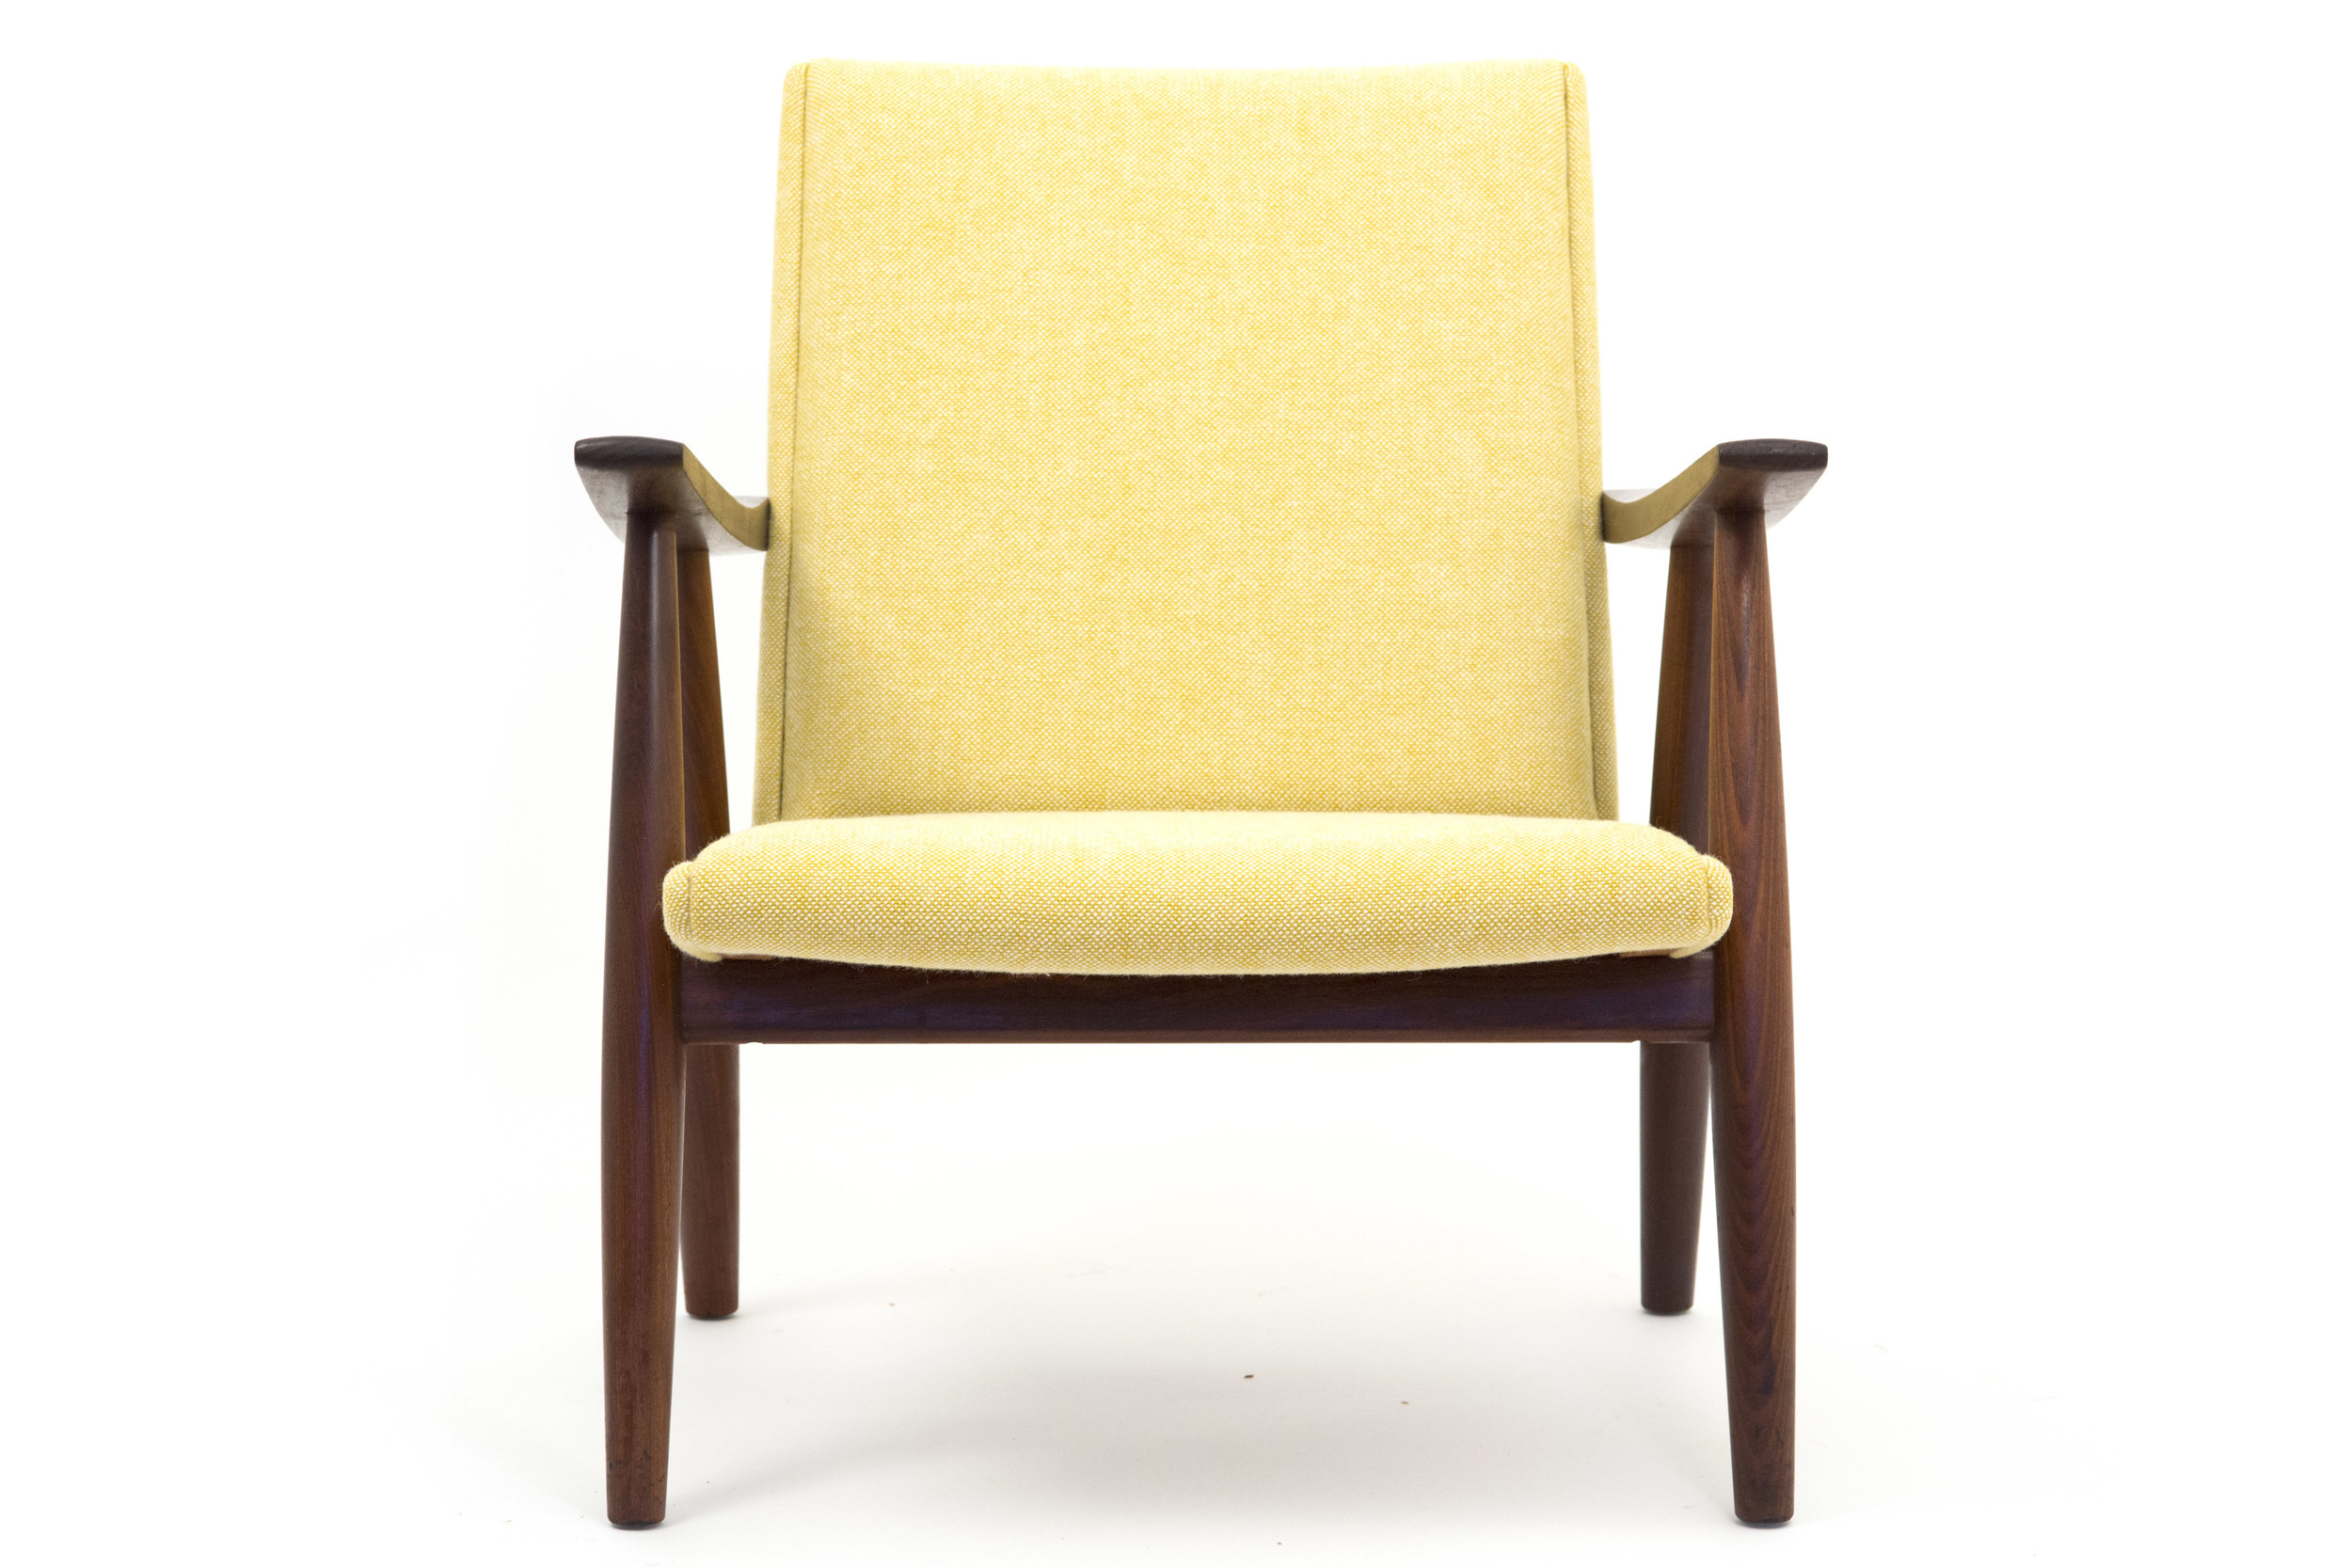 Yellow chair 5.jpg